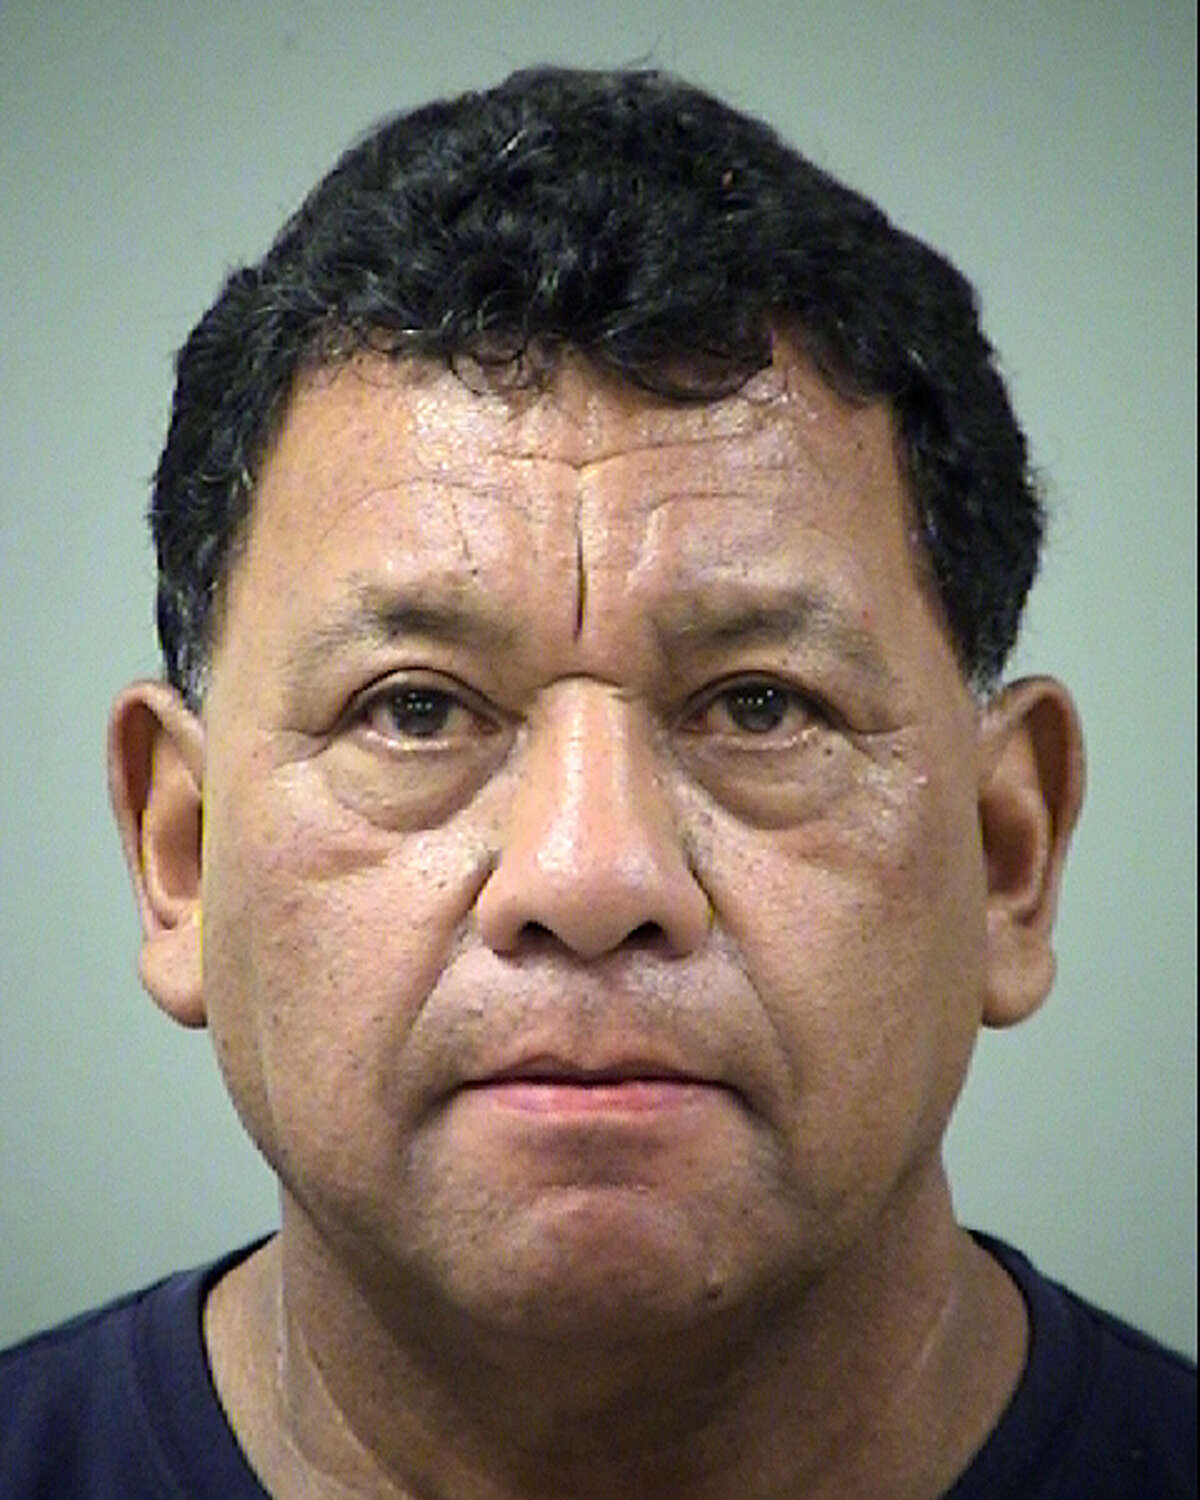 Rodolfo Aleman, 64, was arrested after allegedly soliciting an undercover officer for prostitution Friday afternoon on the West Side.